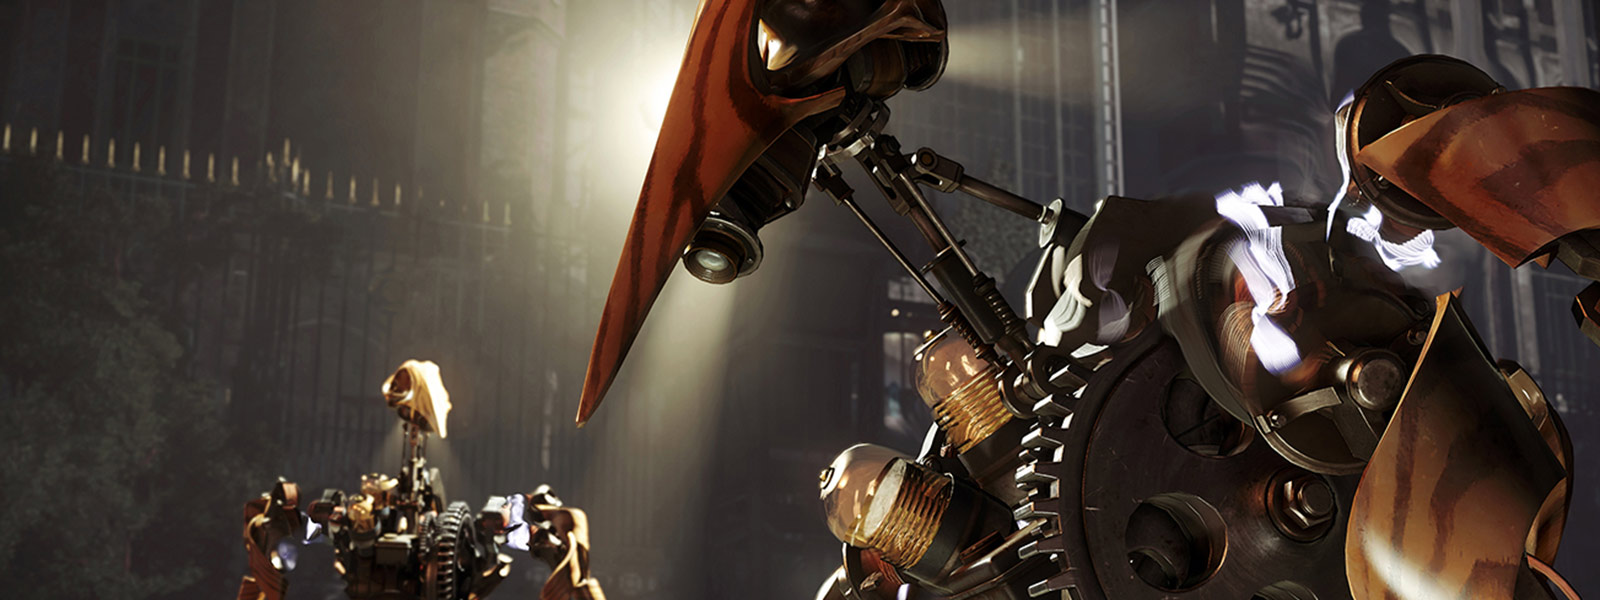 Void-Engine bei Dishonored 2-Roboter